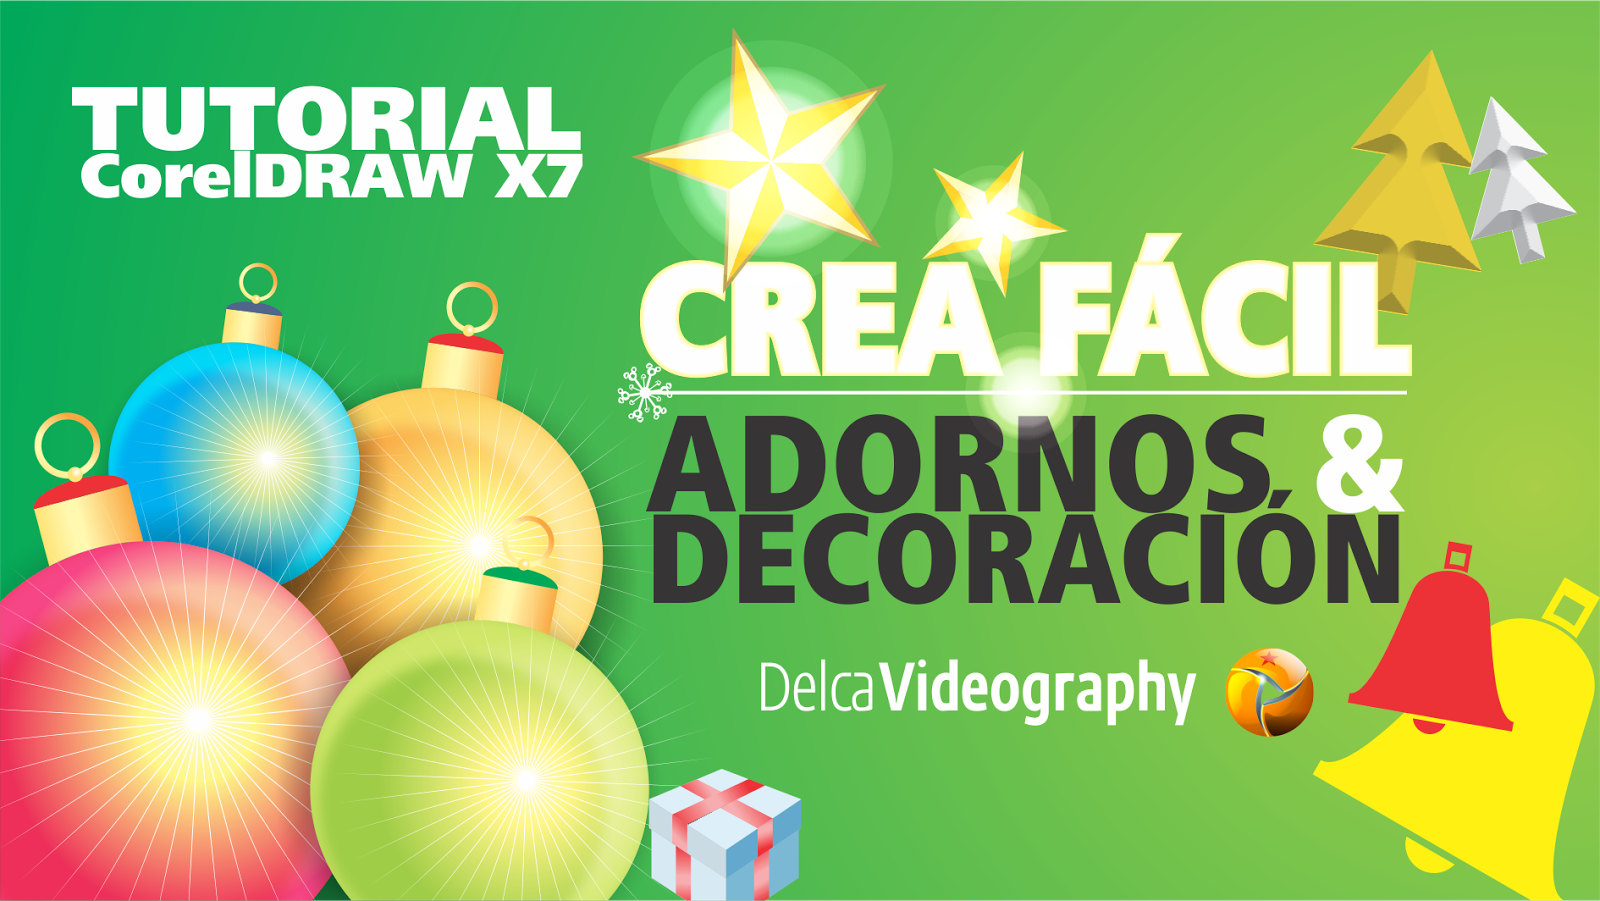 DelcaVideography Official Site: TUTORIAL 4 COREL DRAW X6, X7